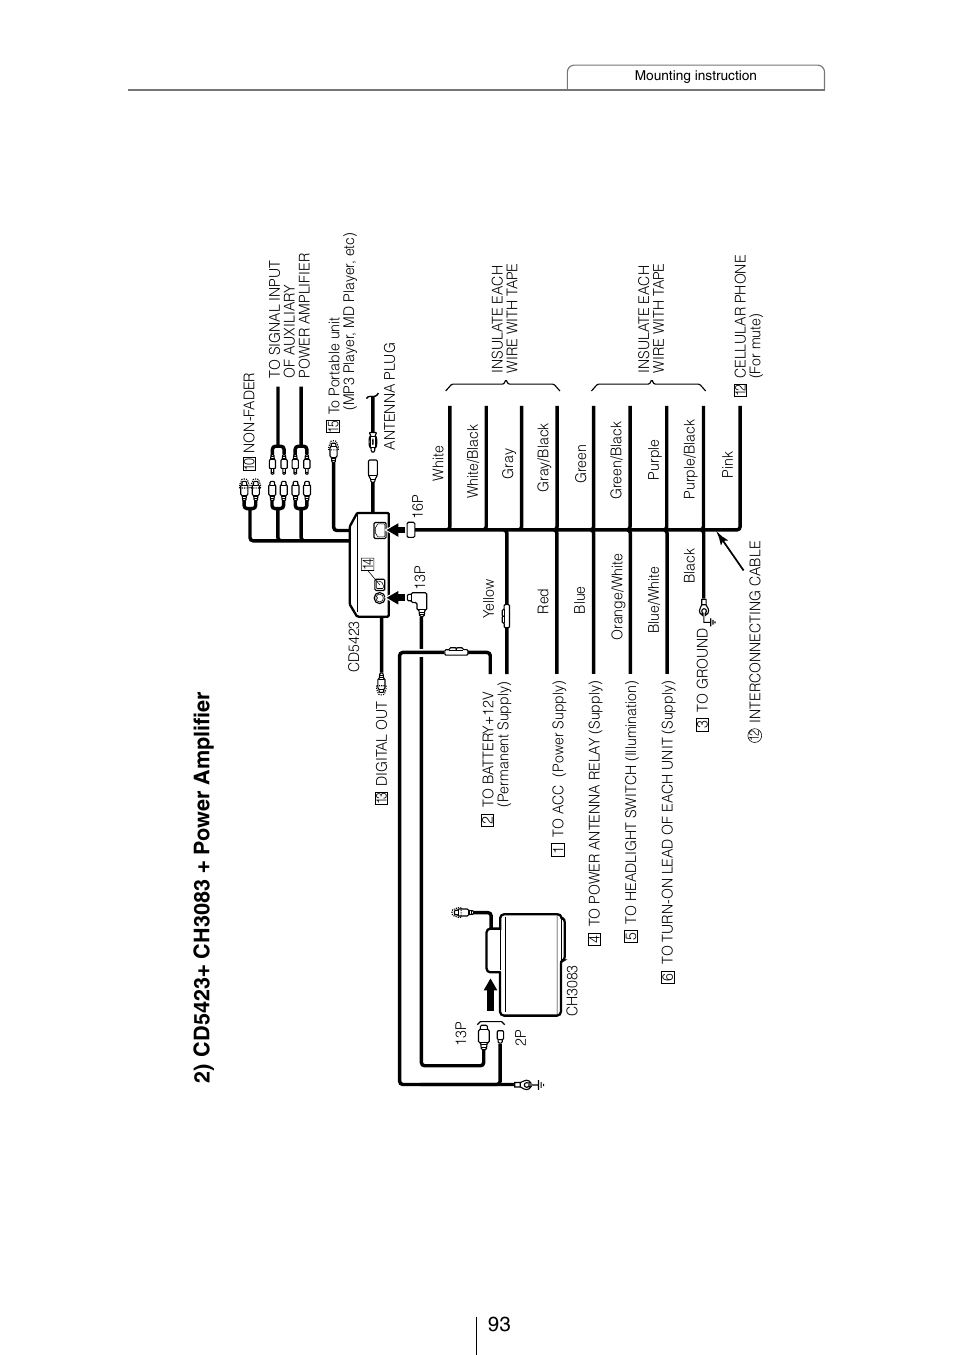 medium resolution of eclipse fujitsu ten cd5423 user manual page 93 96 eclipse model cd5423 wiring diagram